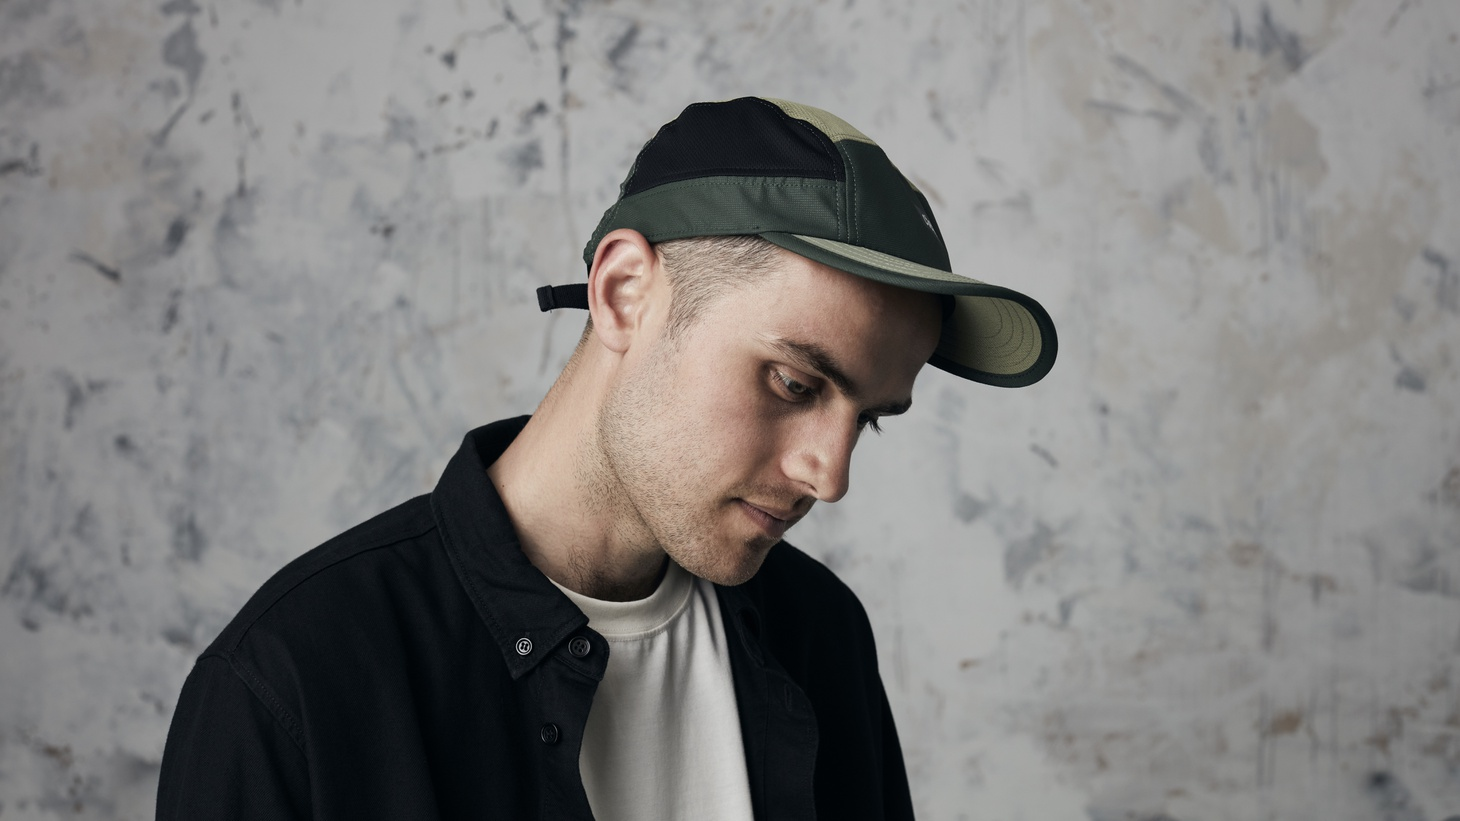 Vocalist, producer, and multi-instrumental musician Jordan Rakei transmits a sonic dispatch from his London base to his family in Australia, letting them know he's doing fine.